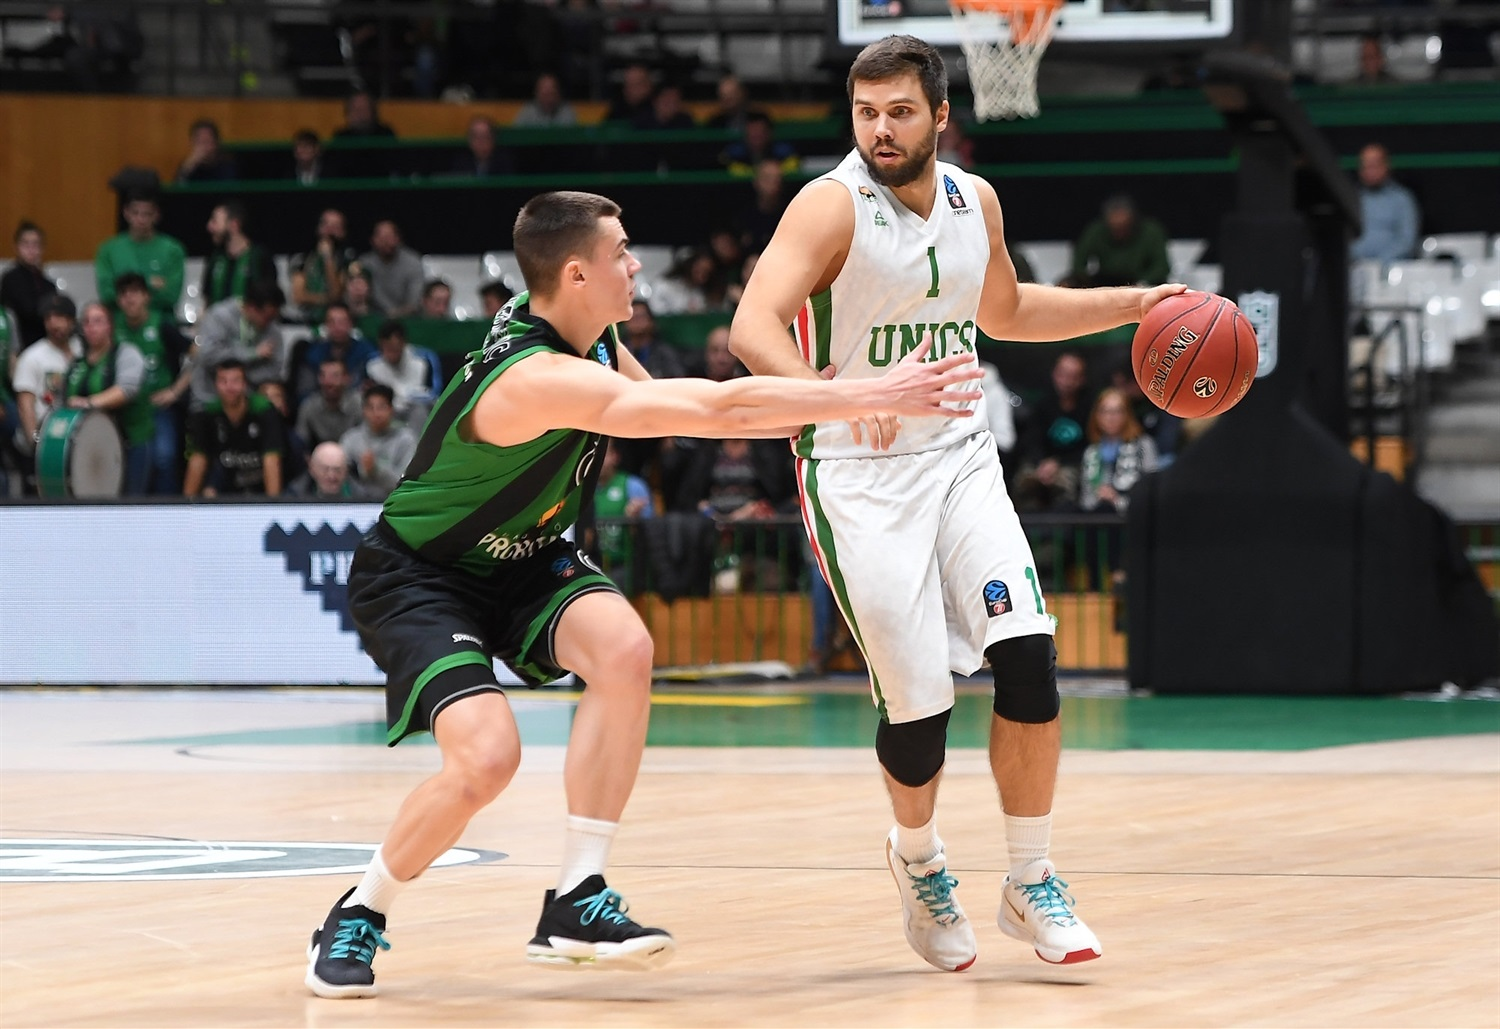 Pavel Sergeev - UNICS Kazan (photo David Grau - Joventut) - EC19